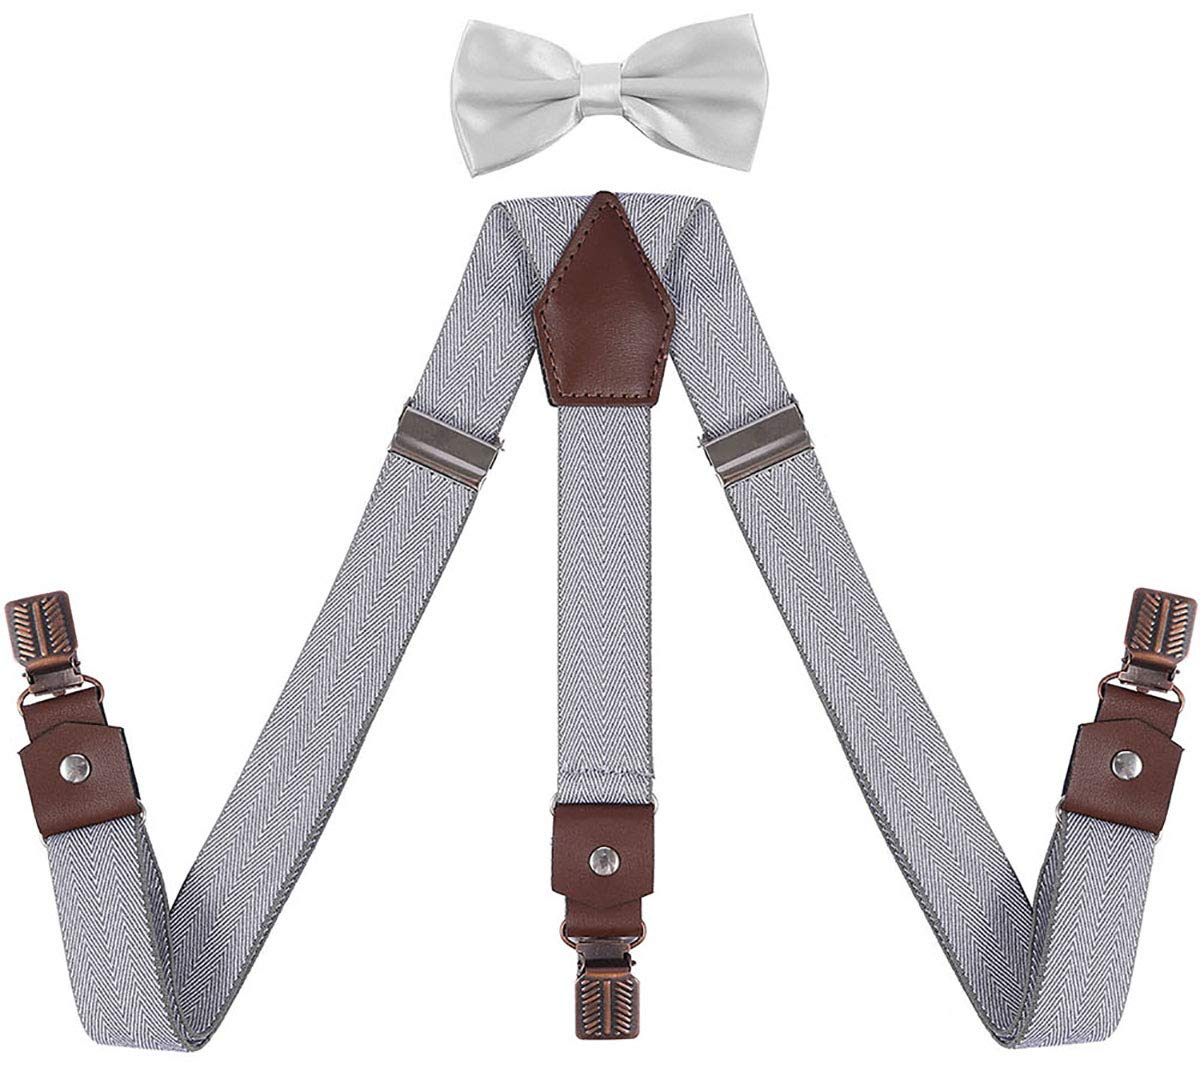 YJDS Men's Suspenders and Bow Tie Set with Antique Bronze Clips Y Back Leather